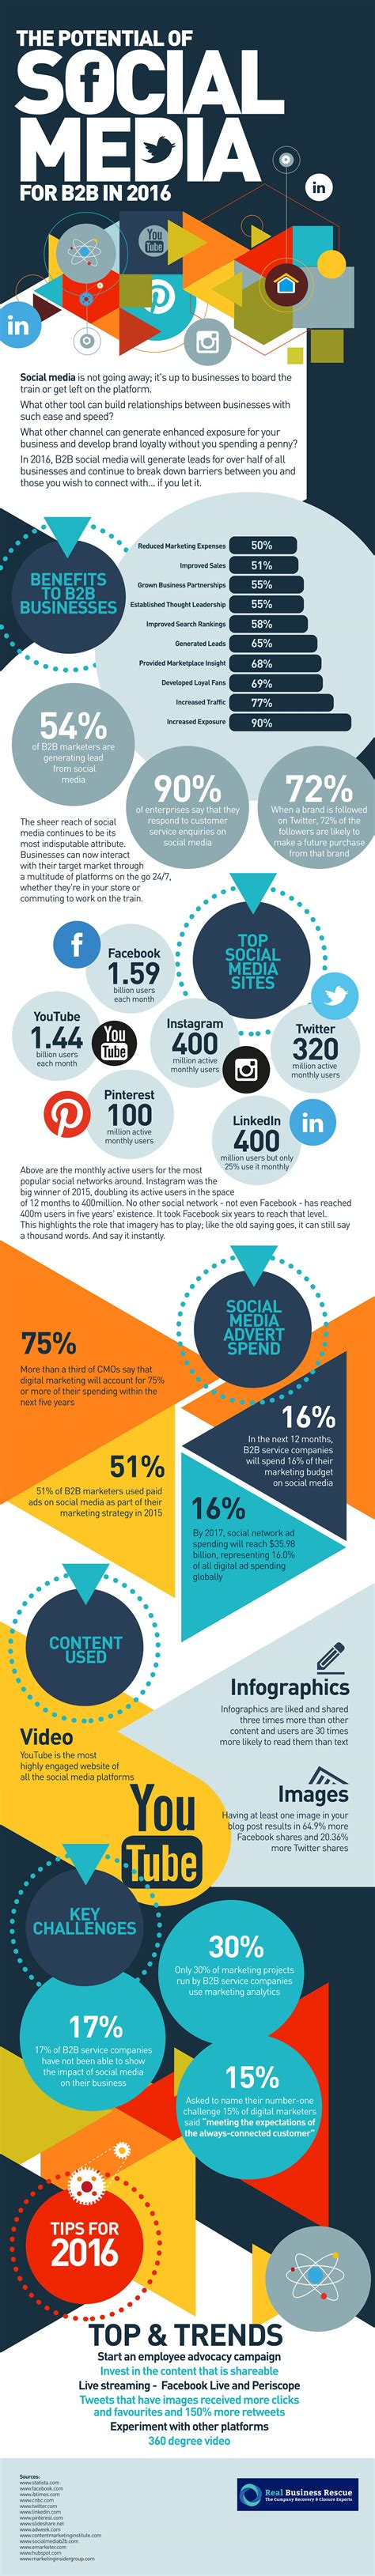 2016 social media marketing infographic social media potential for b2b in 2016 infographic